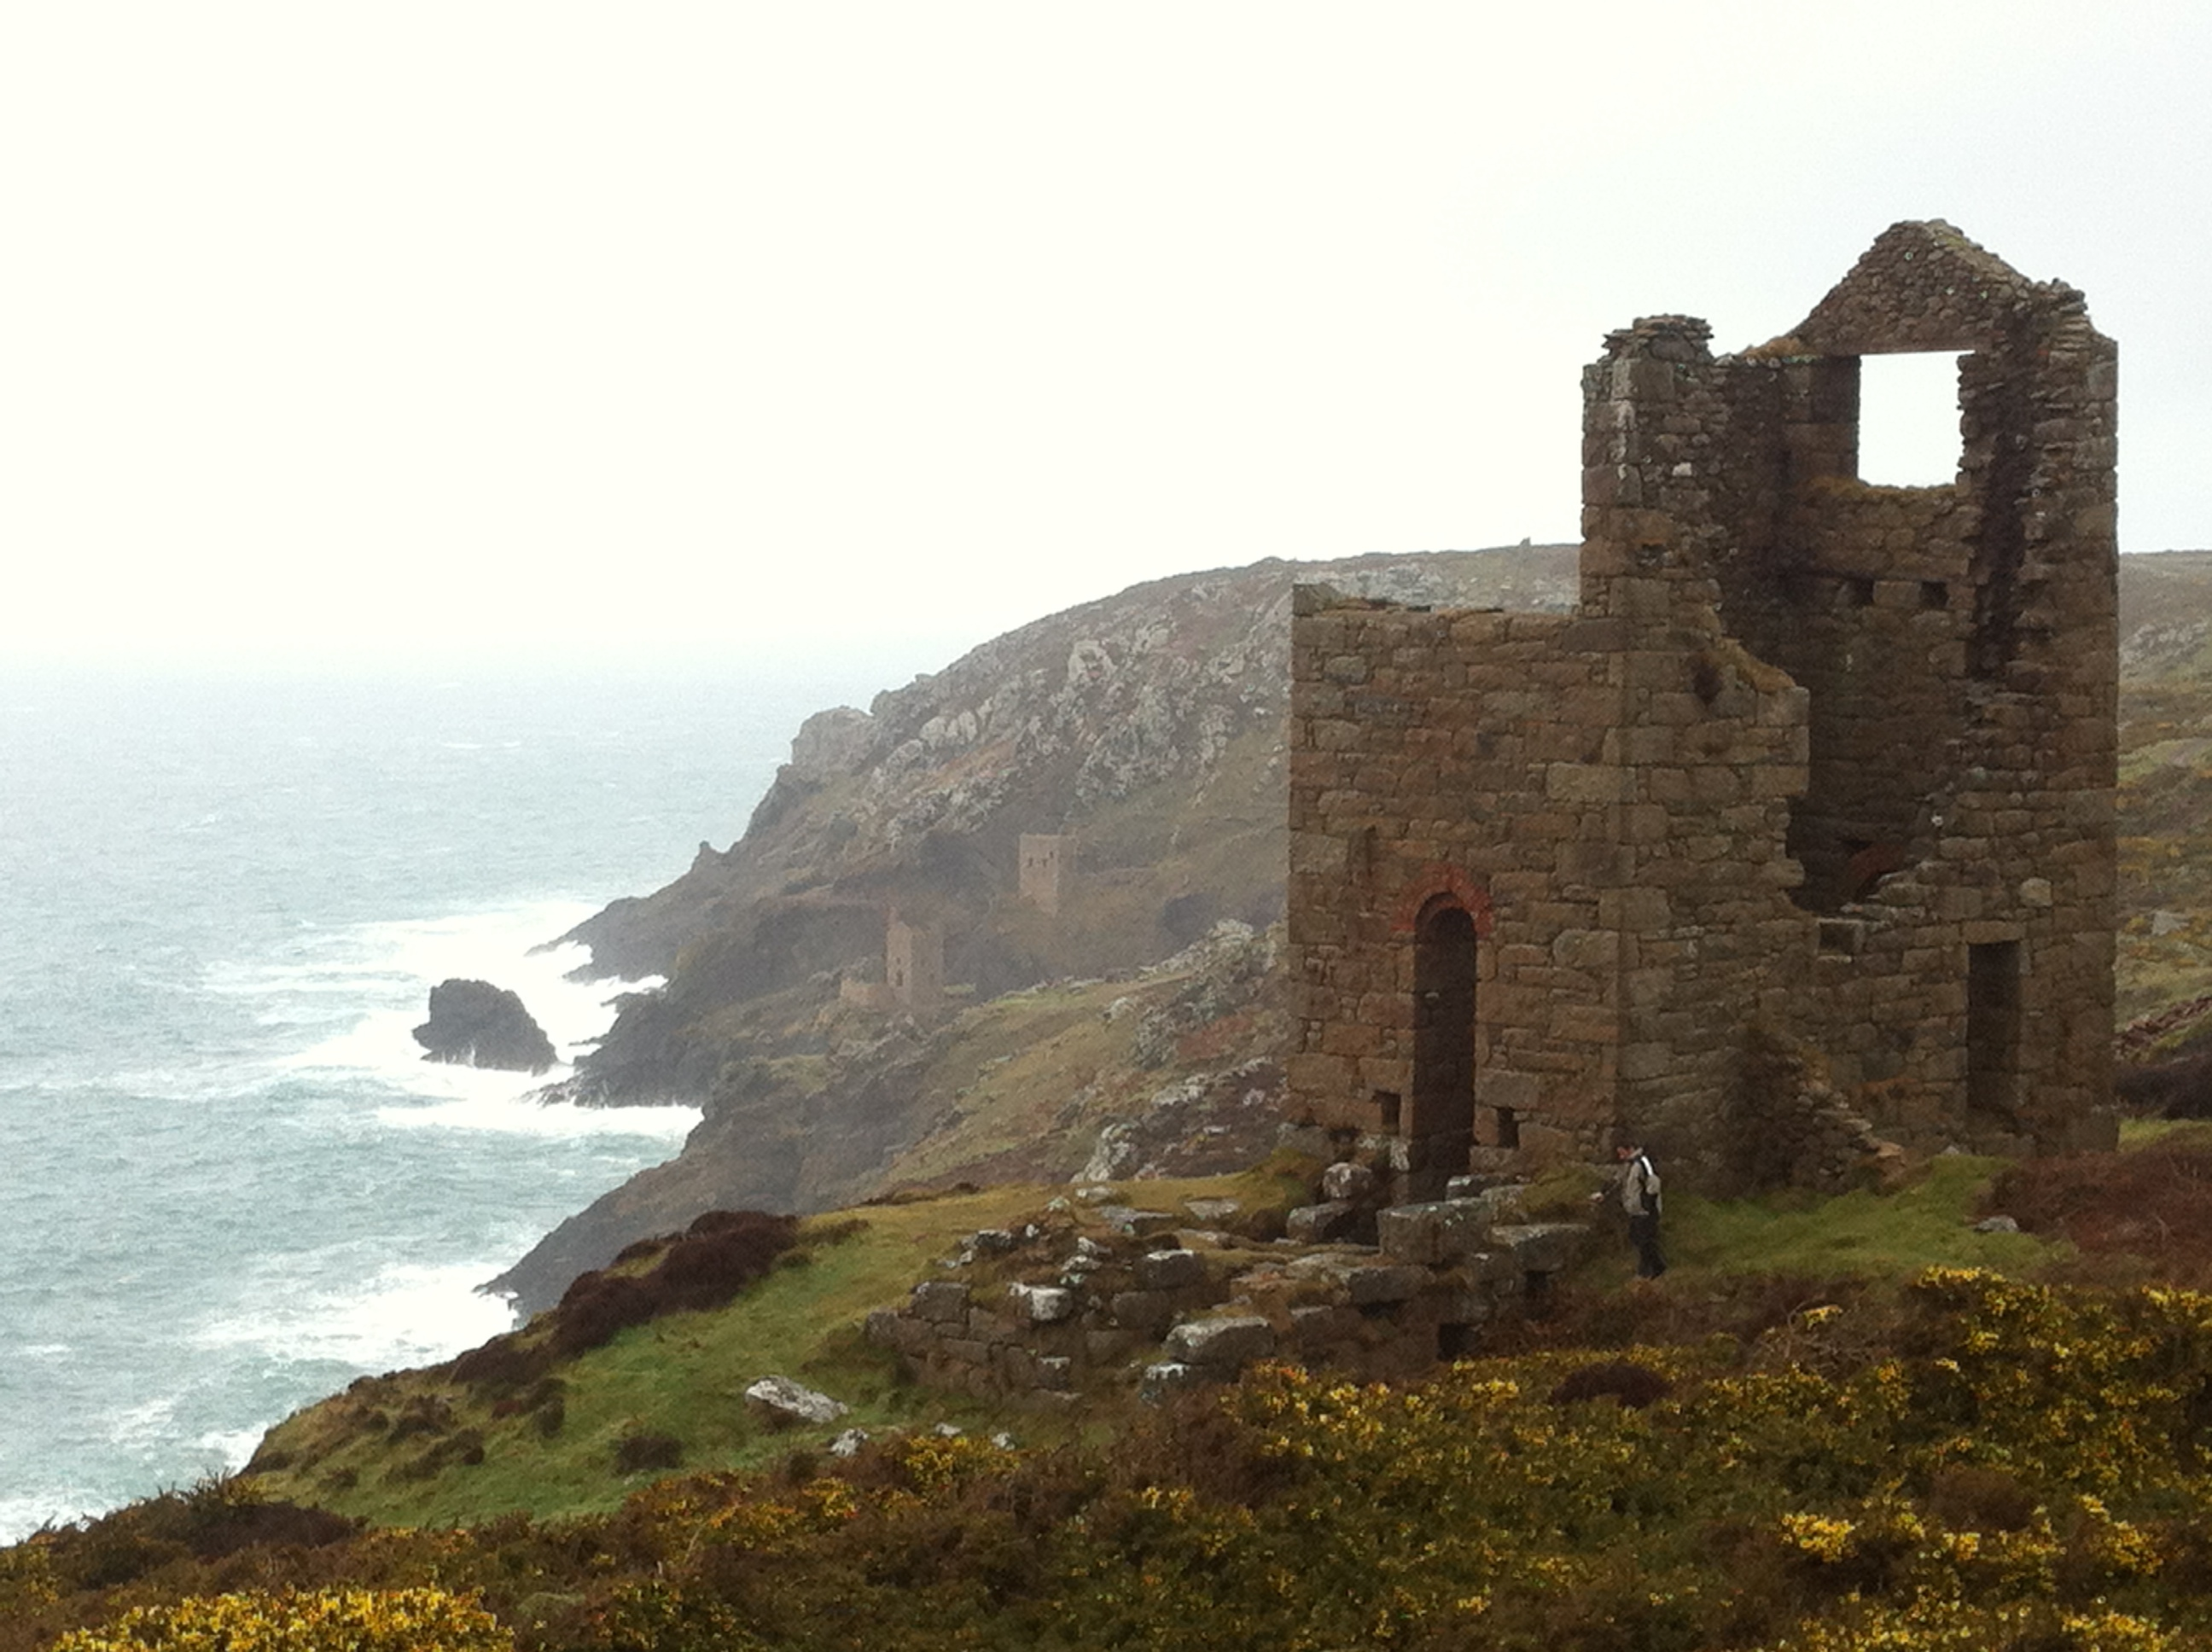 Remnants of Cornwall's Tin and Copper Mining Days at Botallack